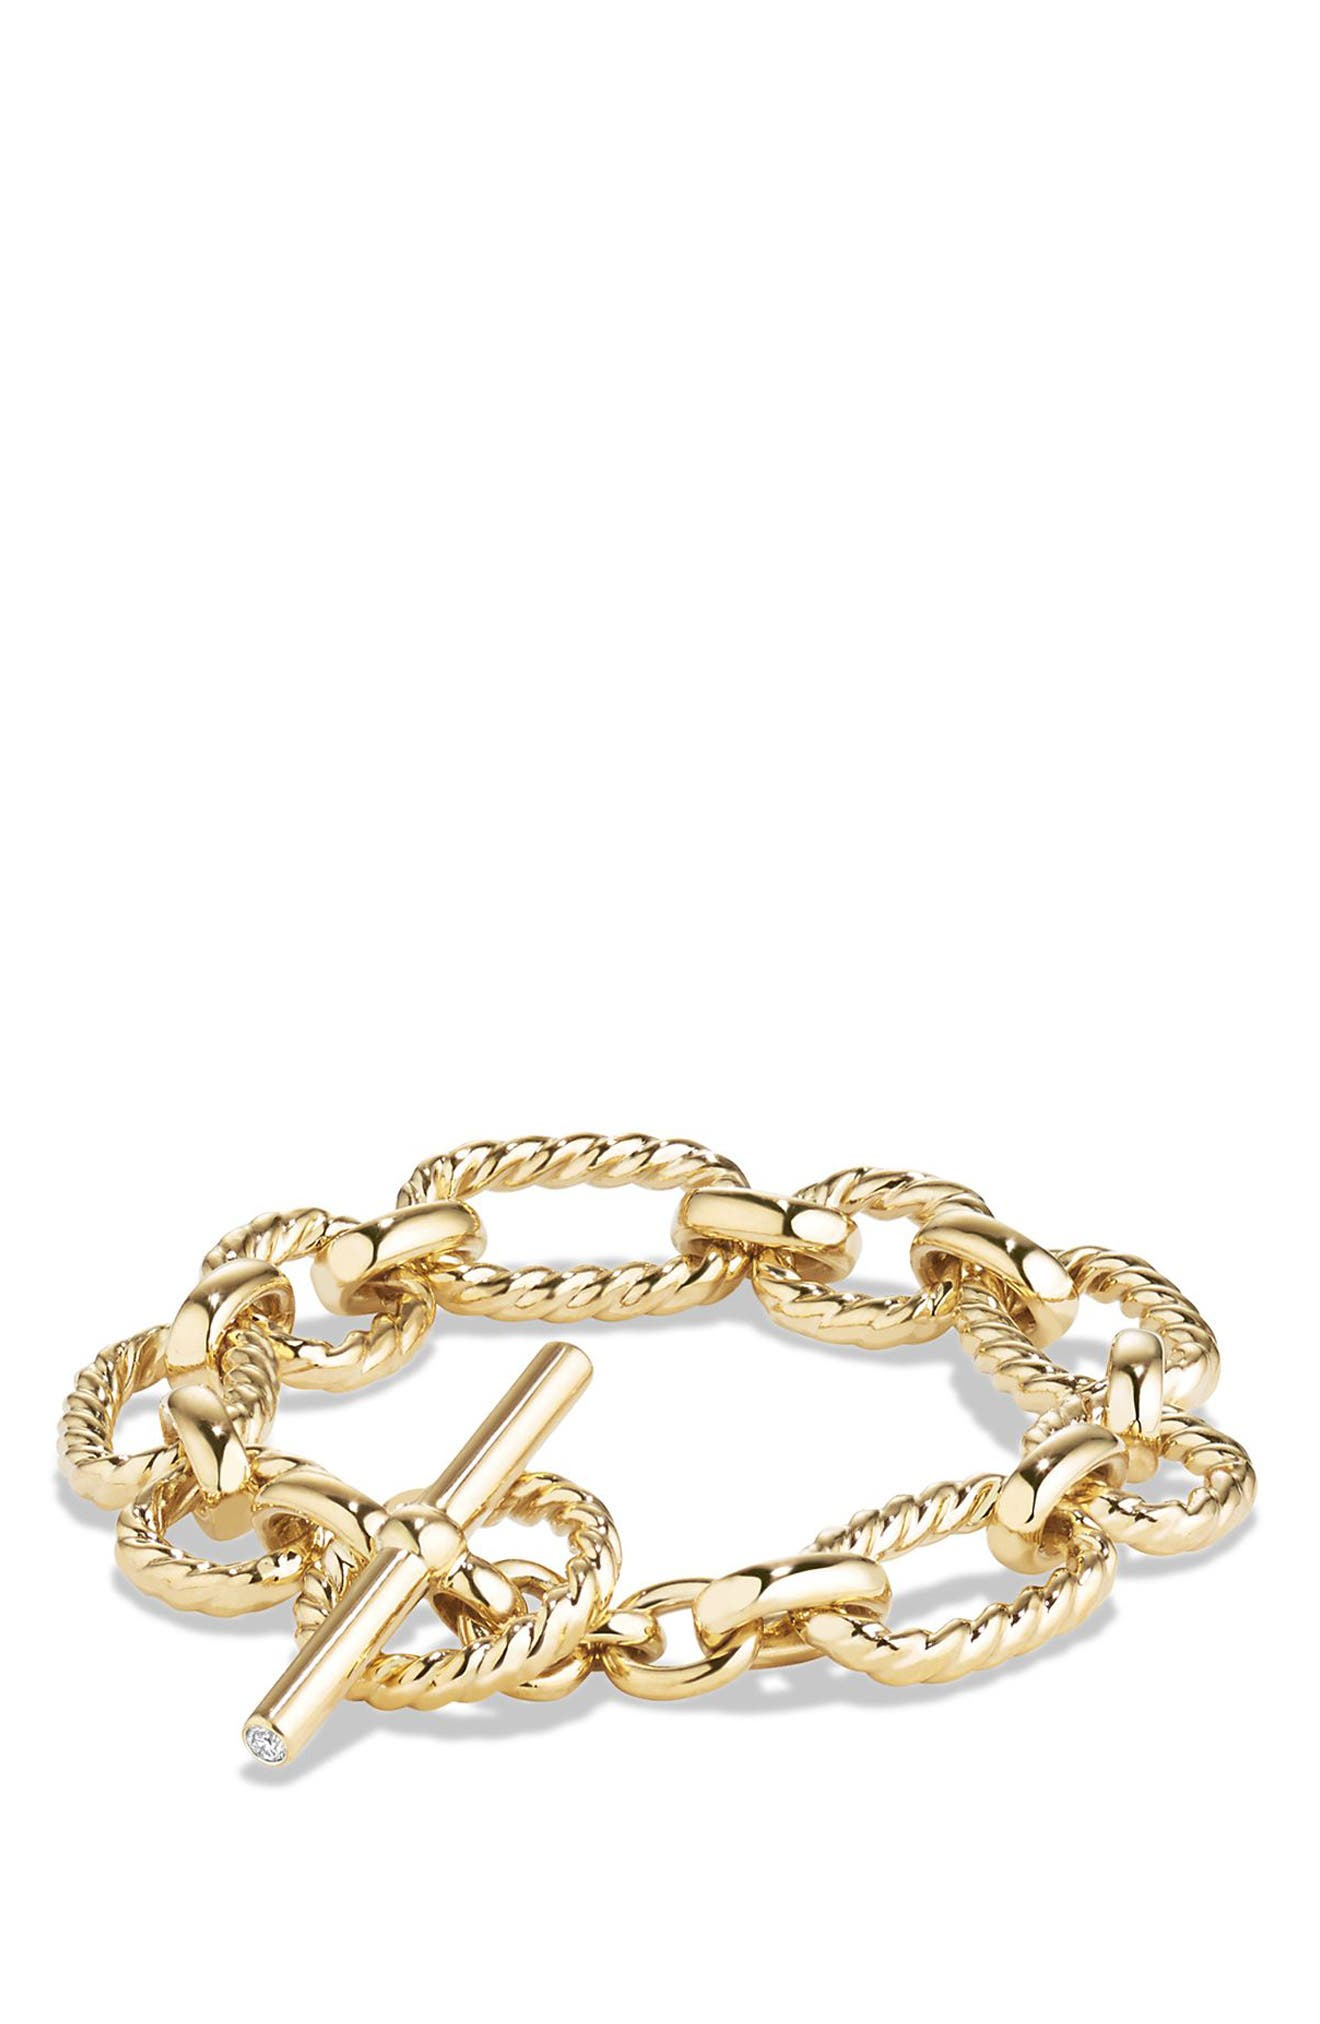 'Chain' Cushion Link Bracelet with Diamonds in 18K Gold,                             Alternate thumbnail 2, color,                             710